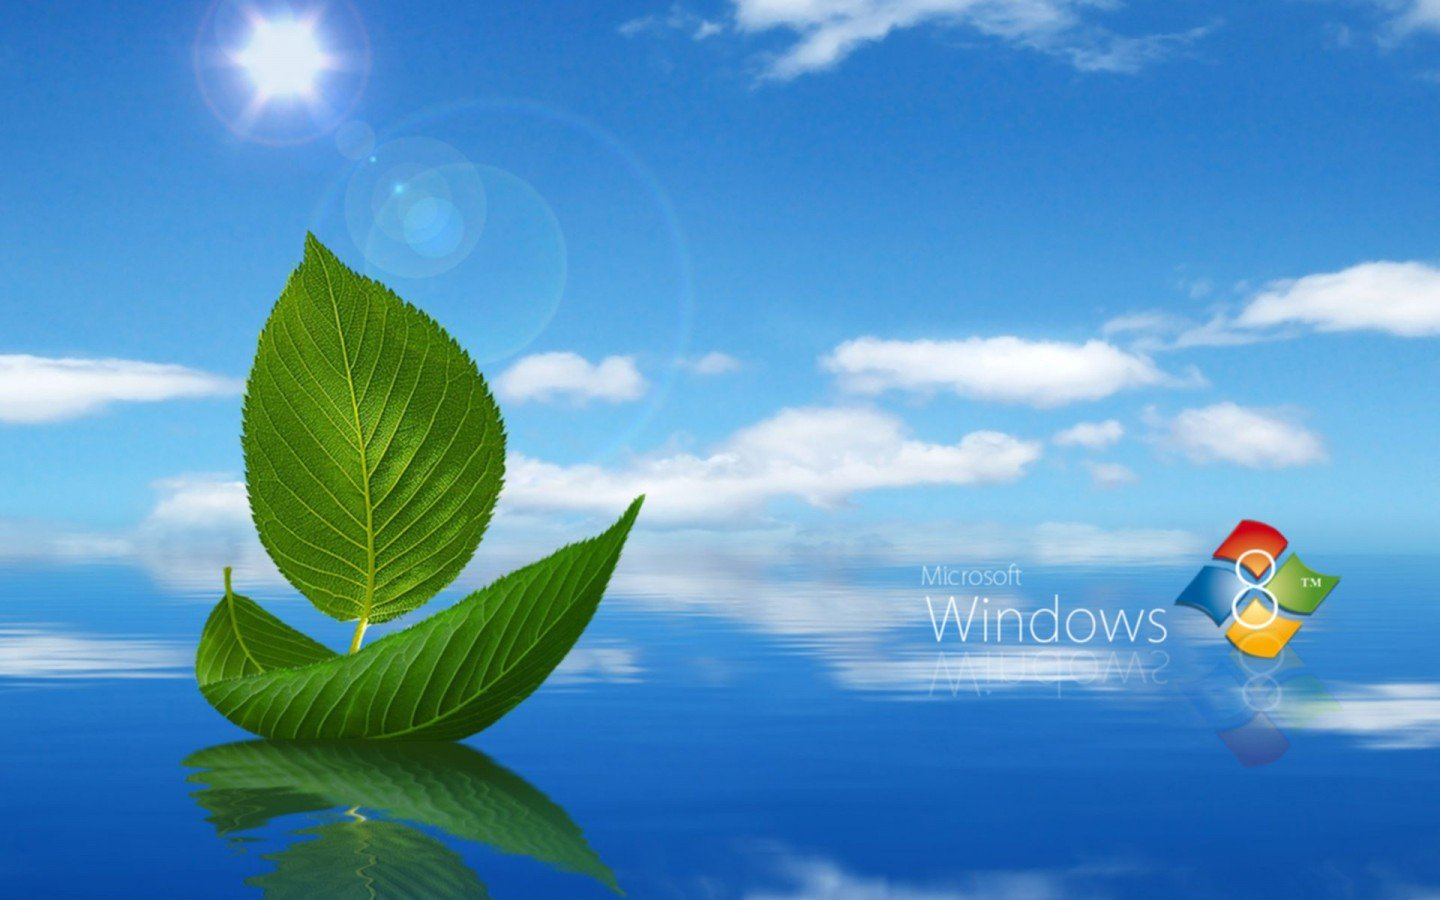 windows 8 wallpaper hd 1920 - wallpapersafari